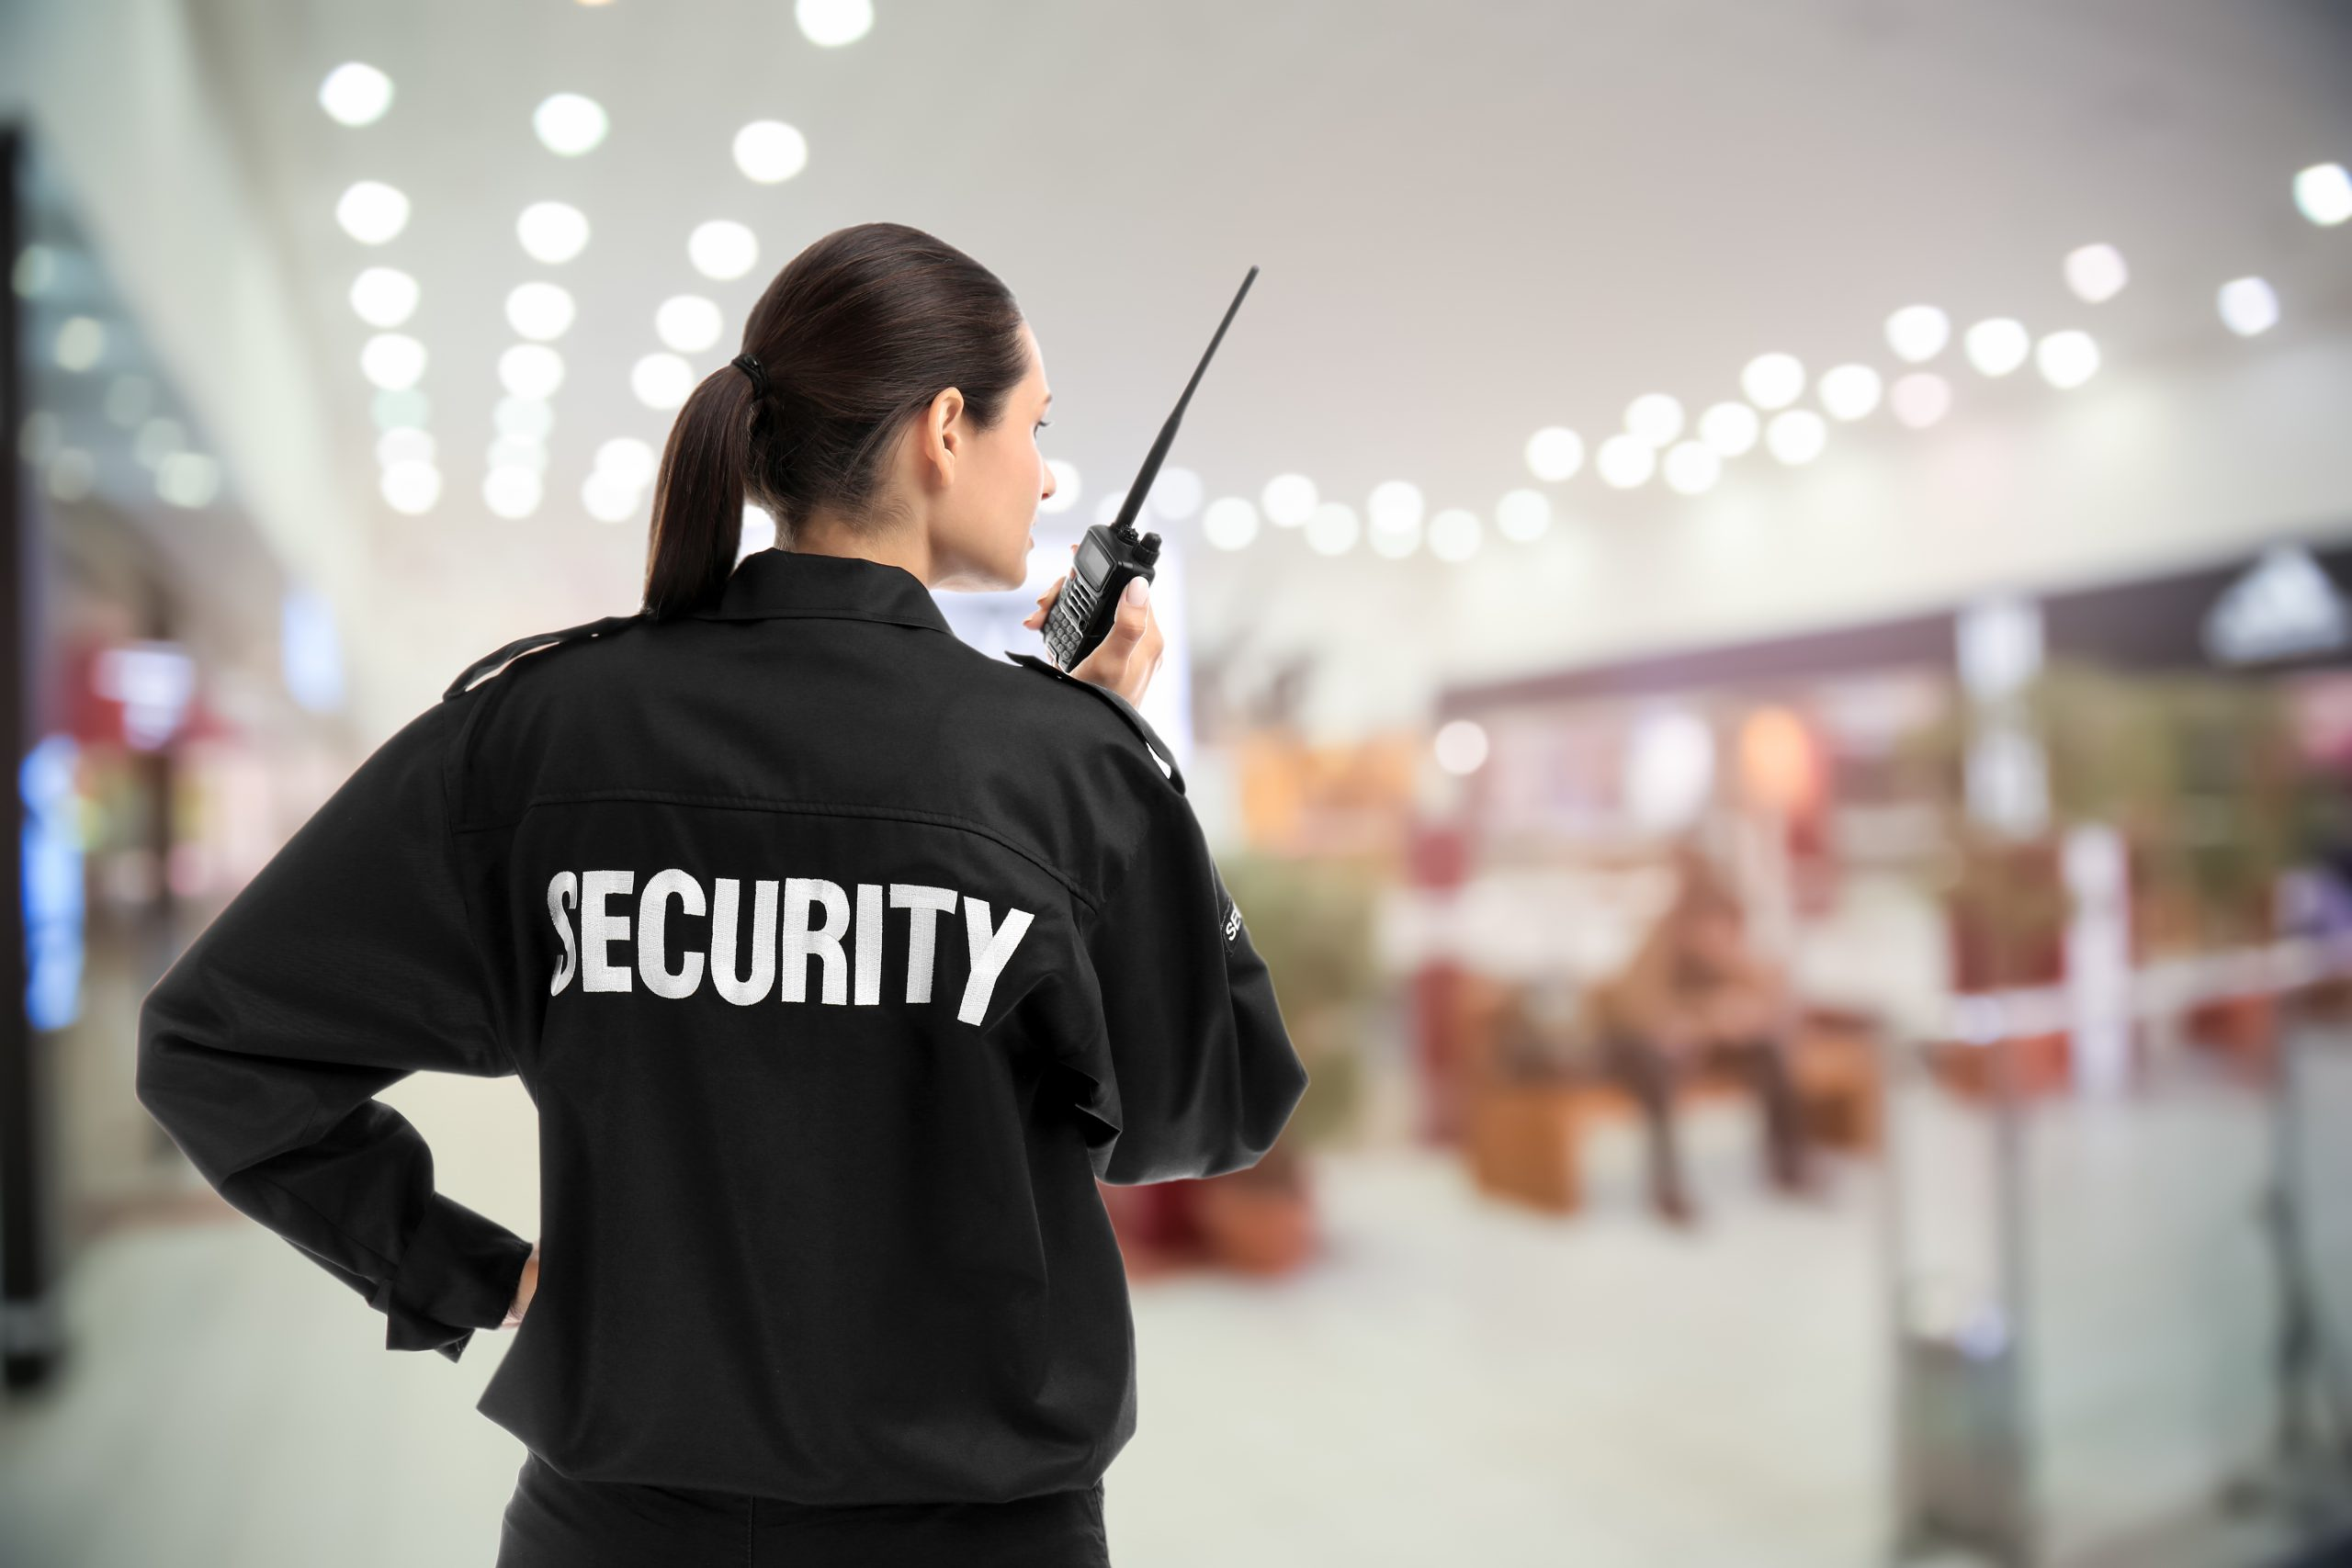 Independent retailers urge PM to crack down on violence against shop workers – while Boots to trial 'body cams' on staff